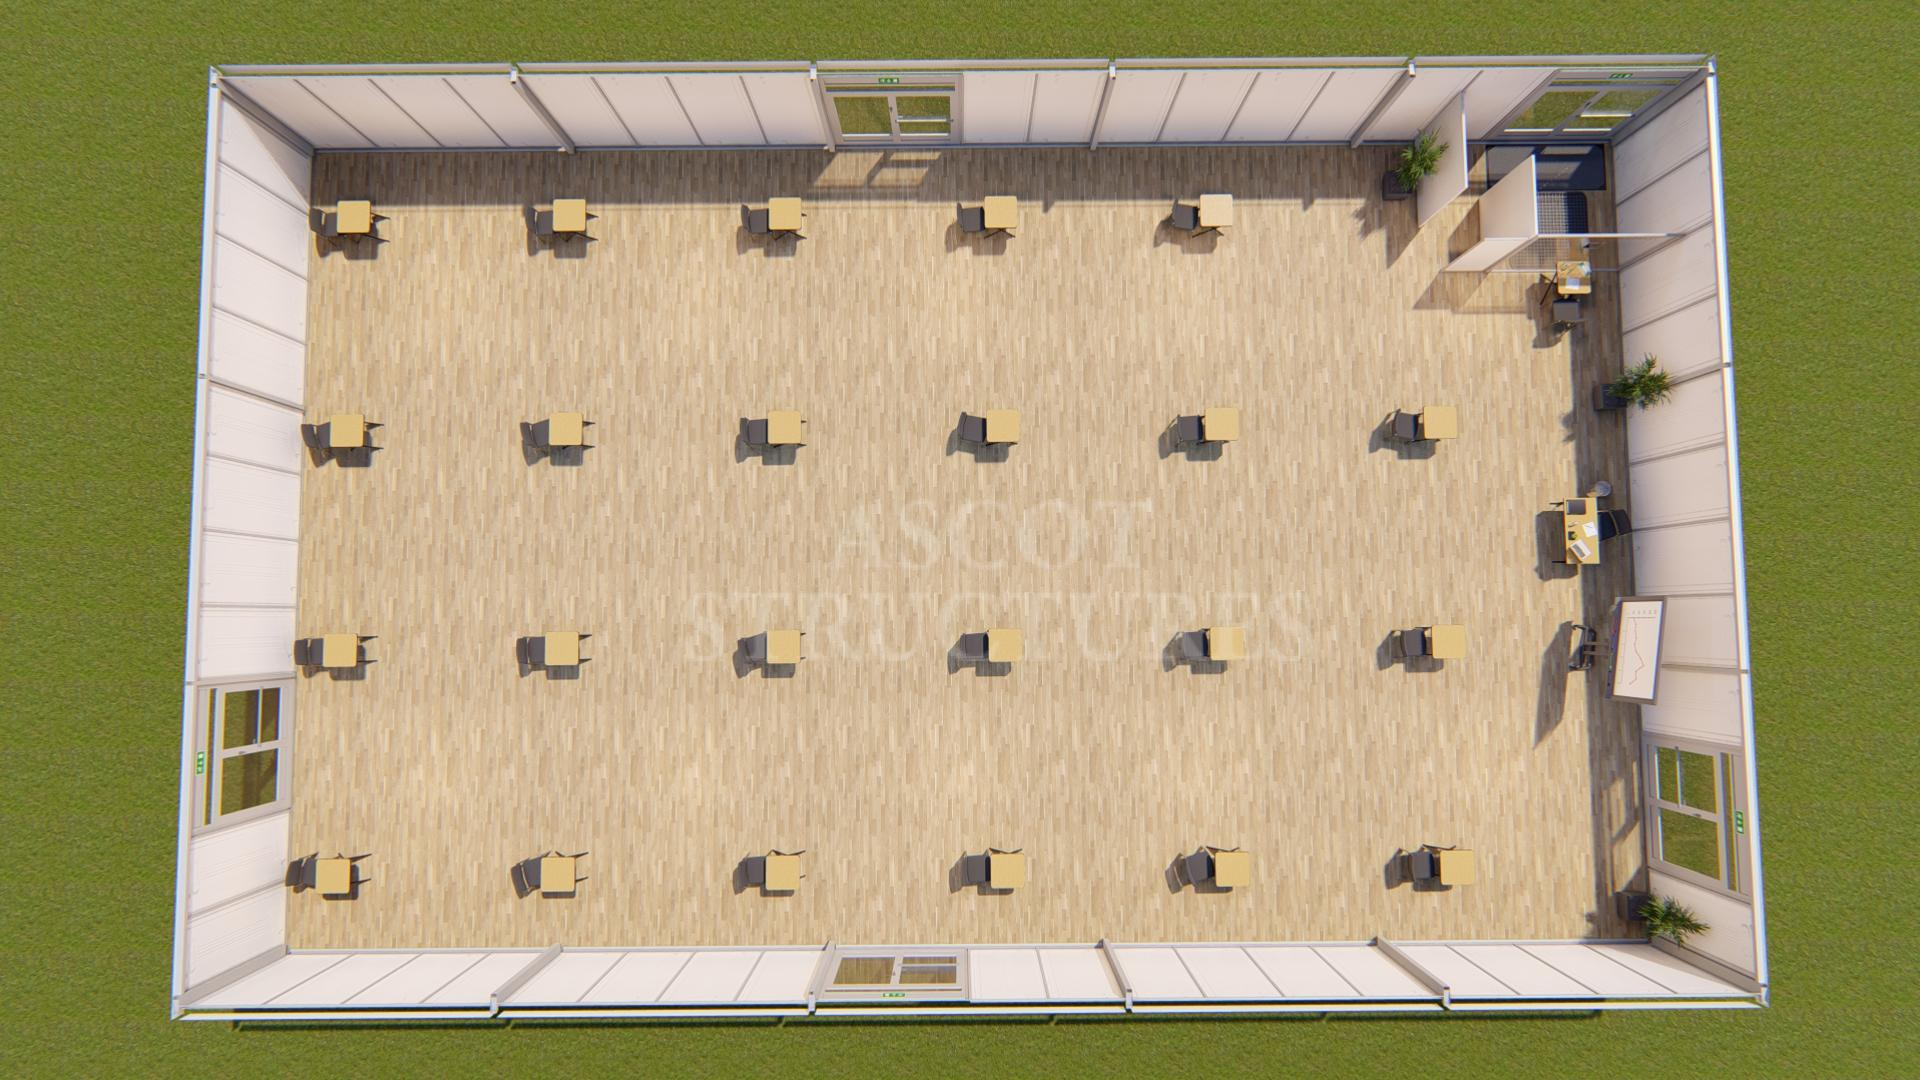 classroom layout for 2m